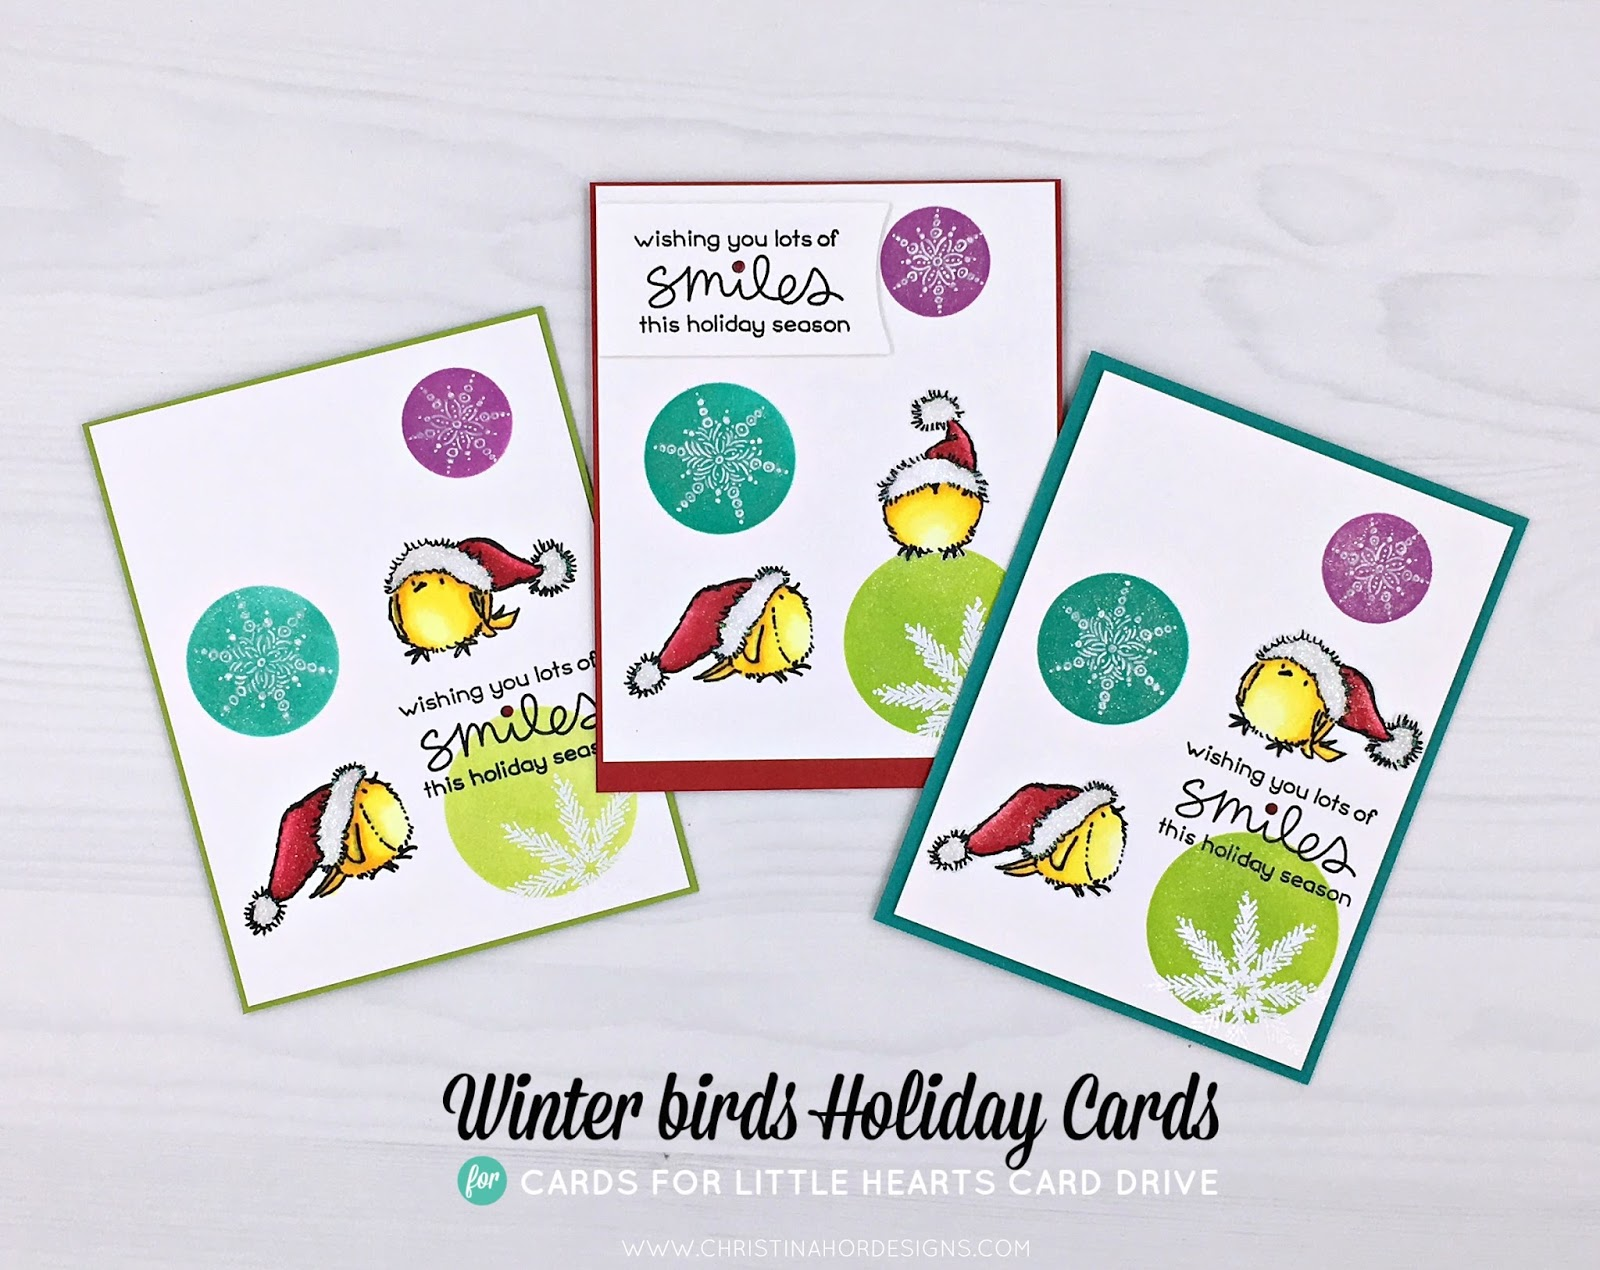 winter holiday cards - cards for little hearts card drive